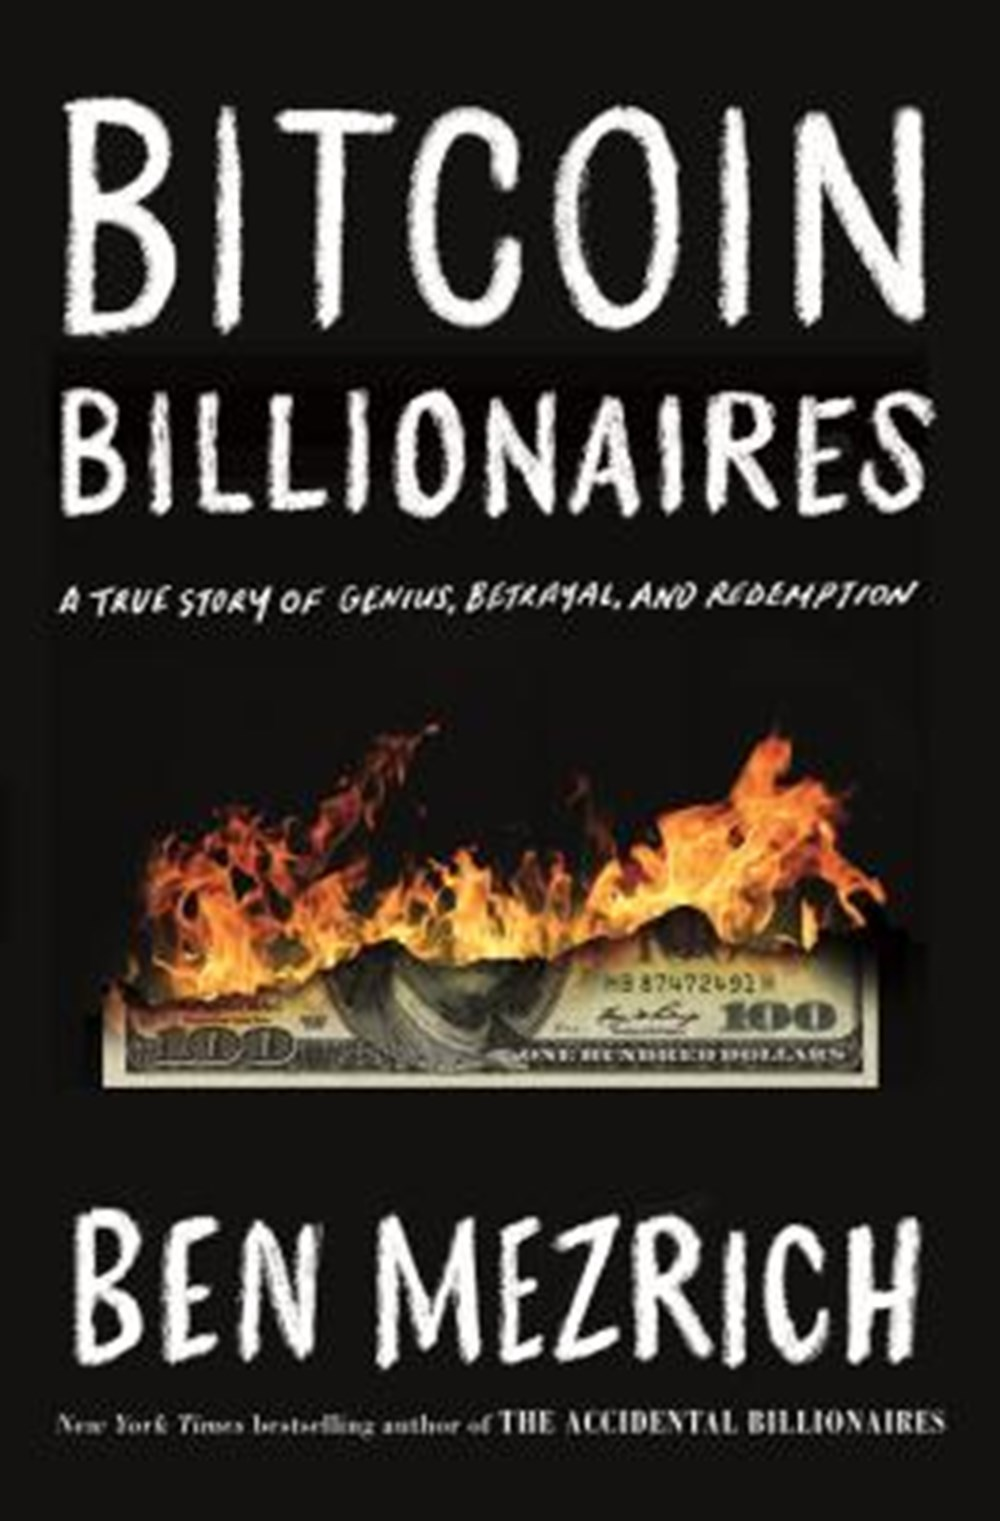 Bitcoin Billionaires A True Story of Genius, Betrayal, and Redemption